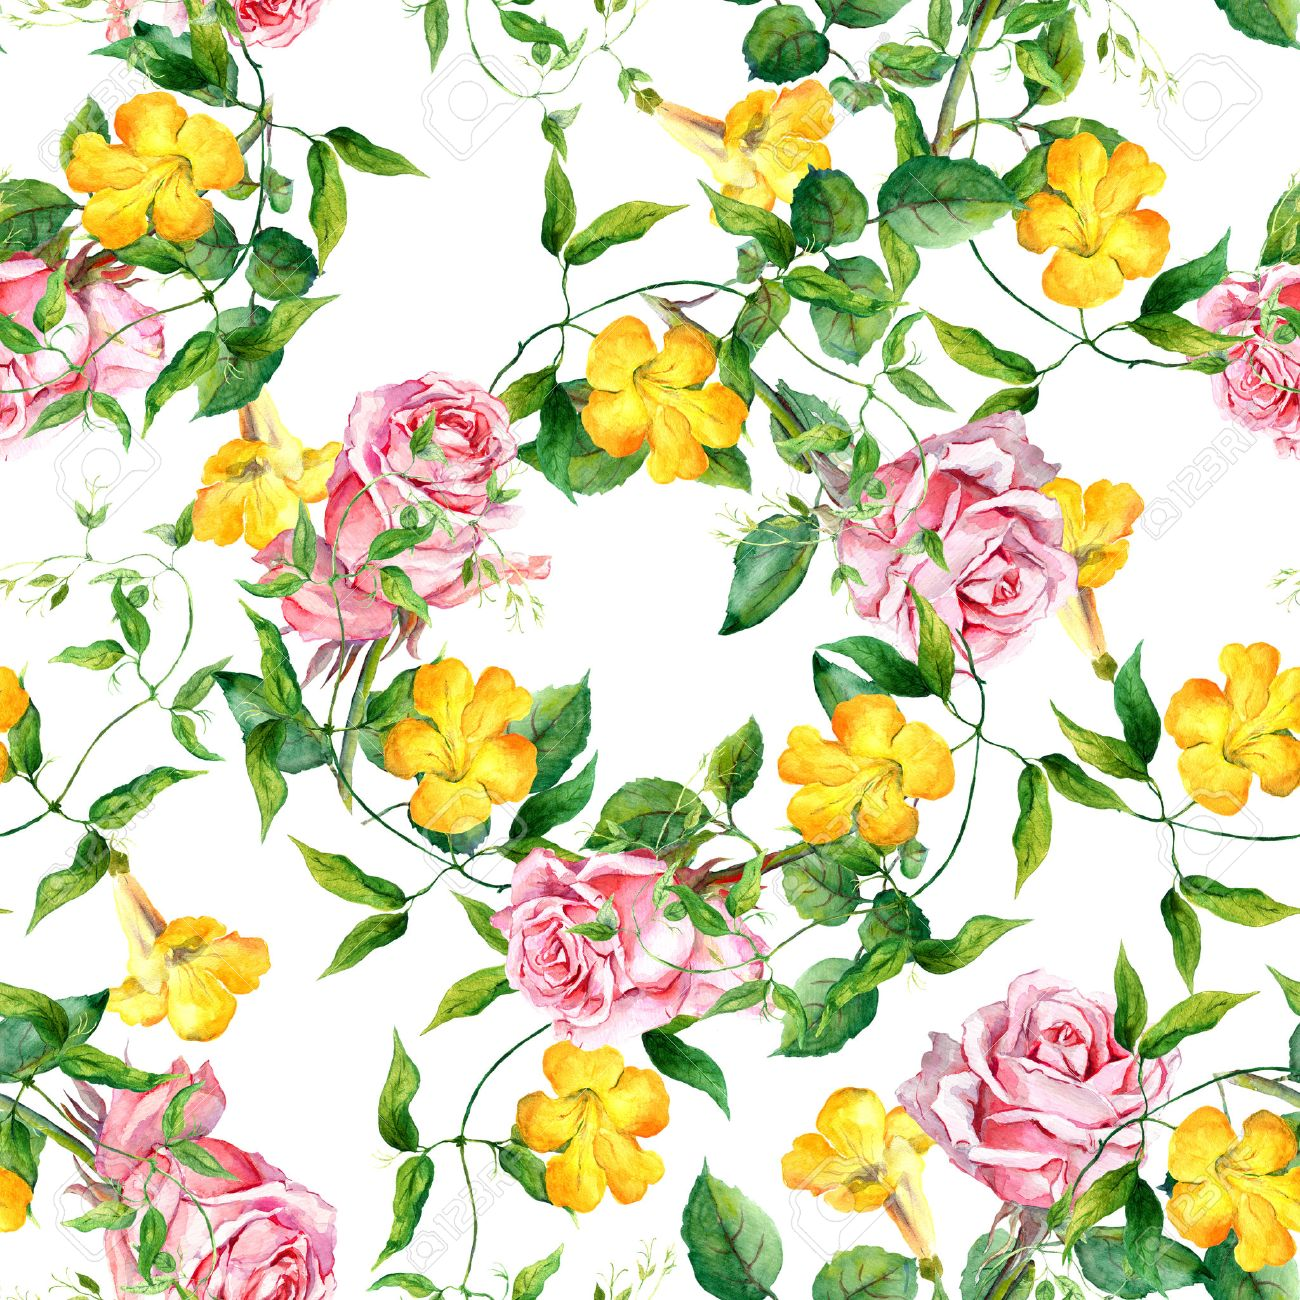 Yellow flower bindweed. Repeating floral pattern. Watercolour background - 45474203